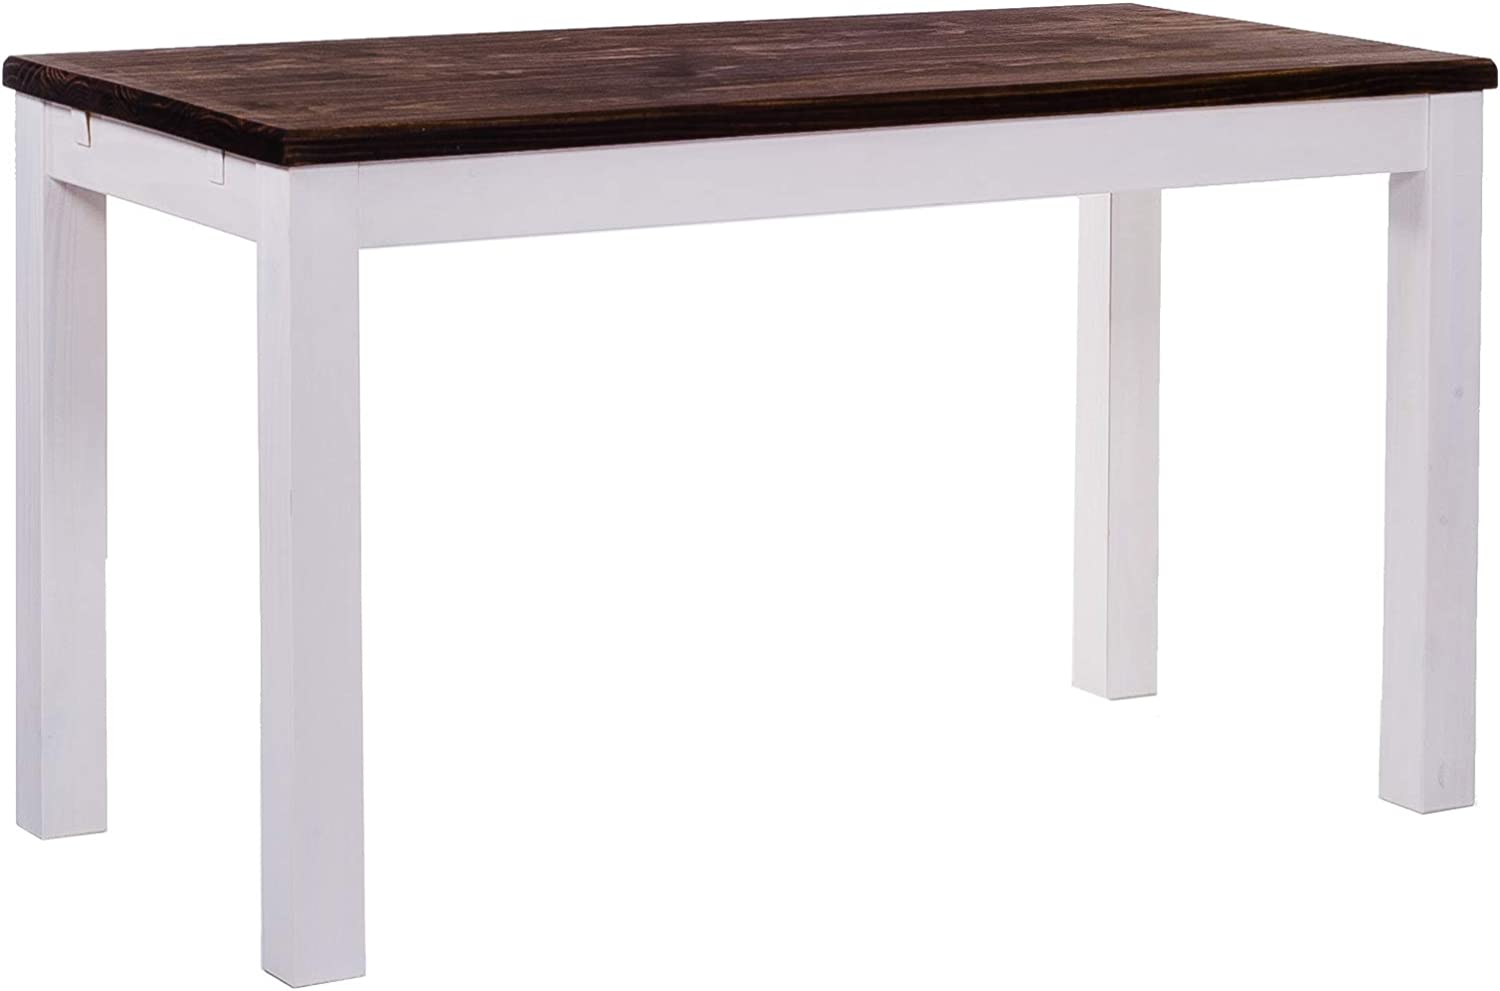 TableChamp Dining Table Rio 47 x 30 Oak Antique White Solid Wood Pine Oiled Extension Extendable